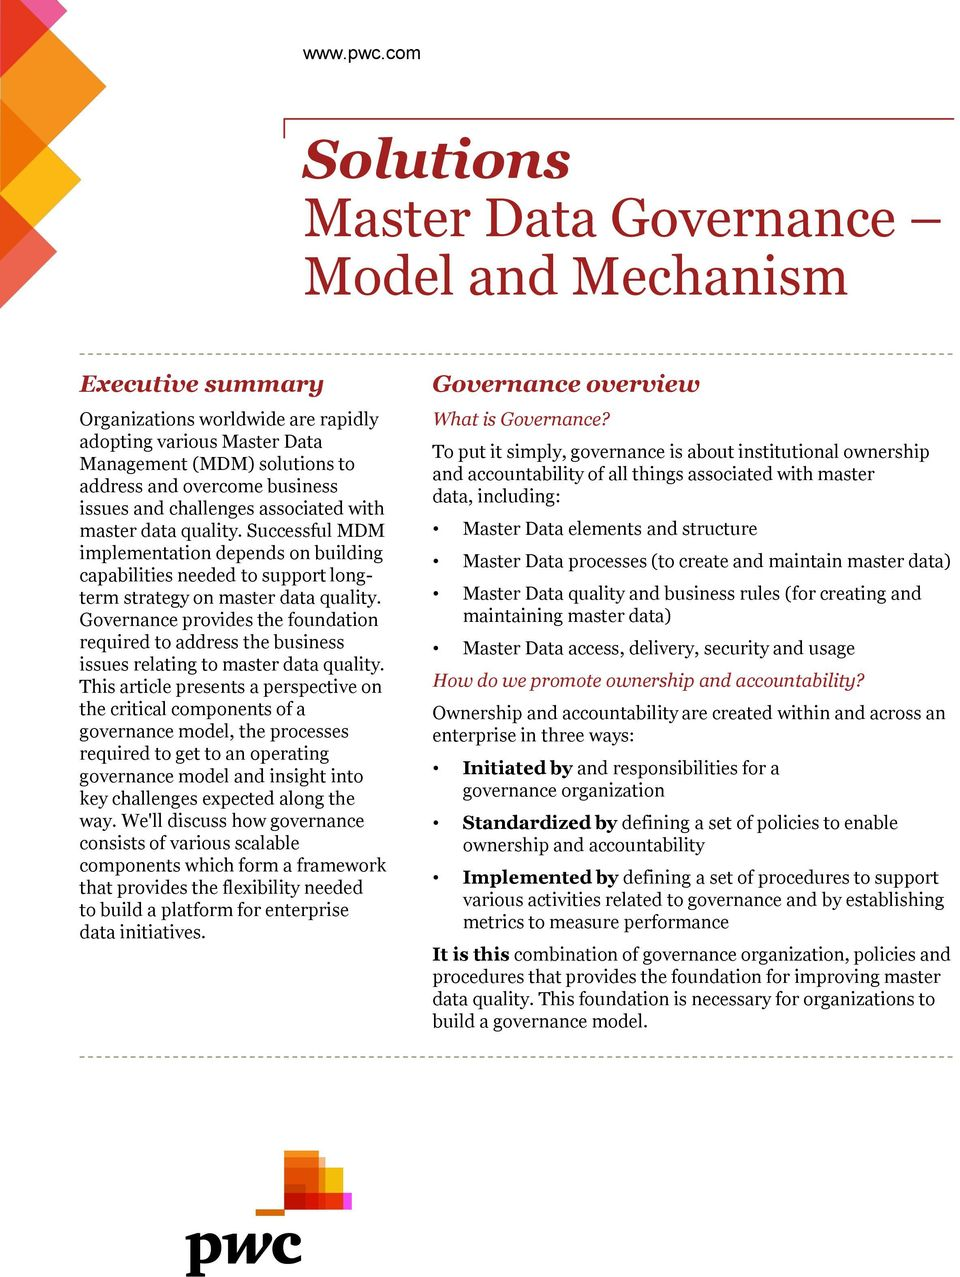 issues and challenges associated with master data quality. Successful MDM implementation depends on building capabilities needed to support longterm strategy on master data quality.